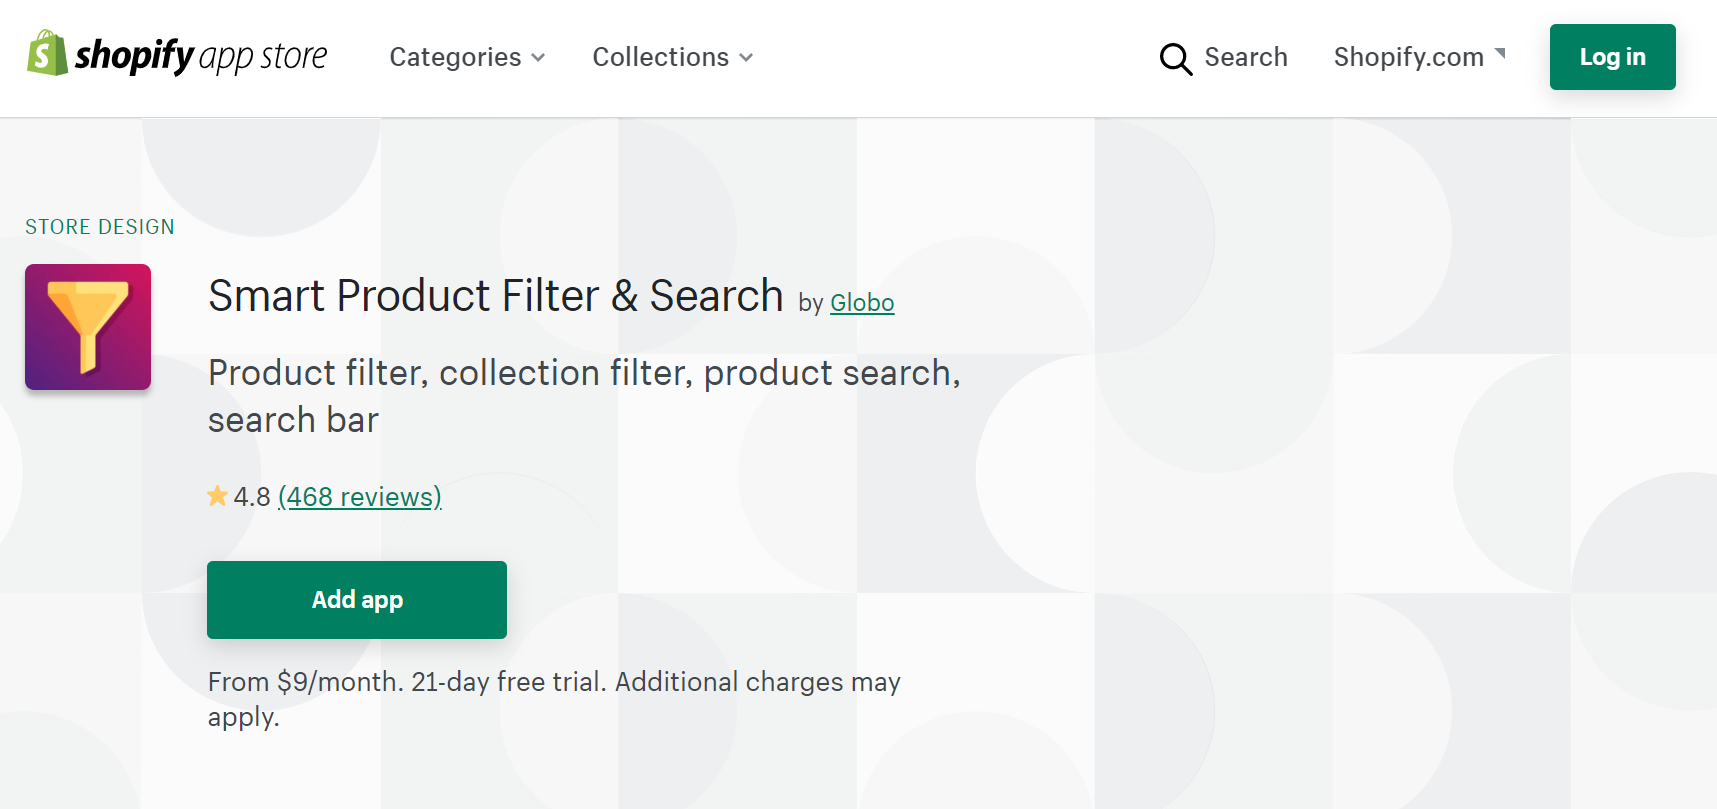 Smart Product Filter & Search